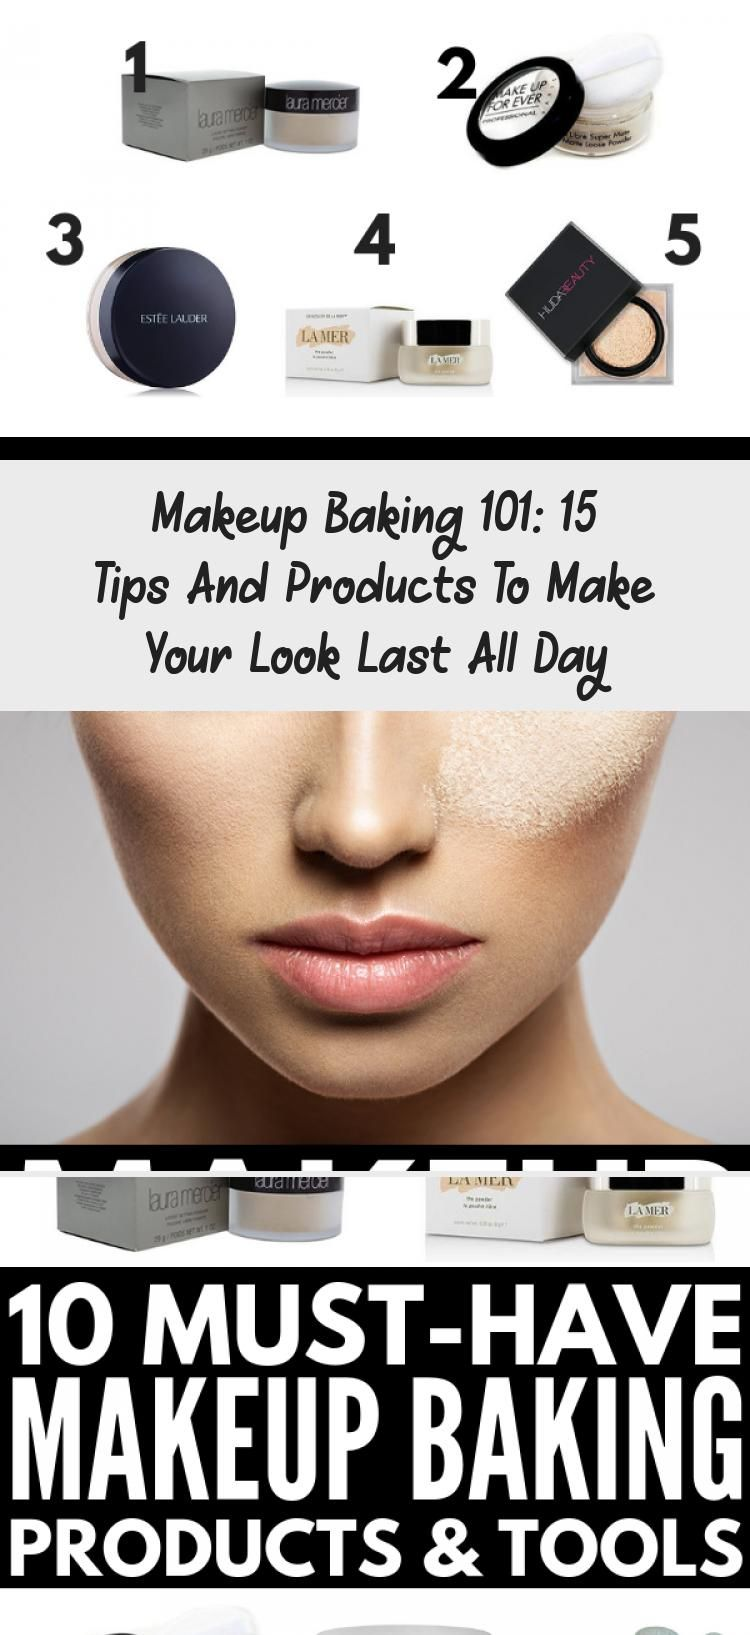 Why does my face eat my foundation? How to make makeup